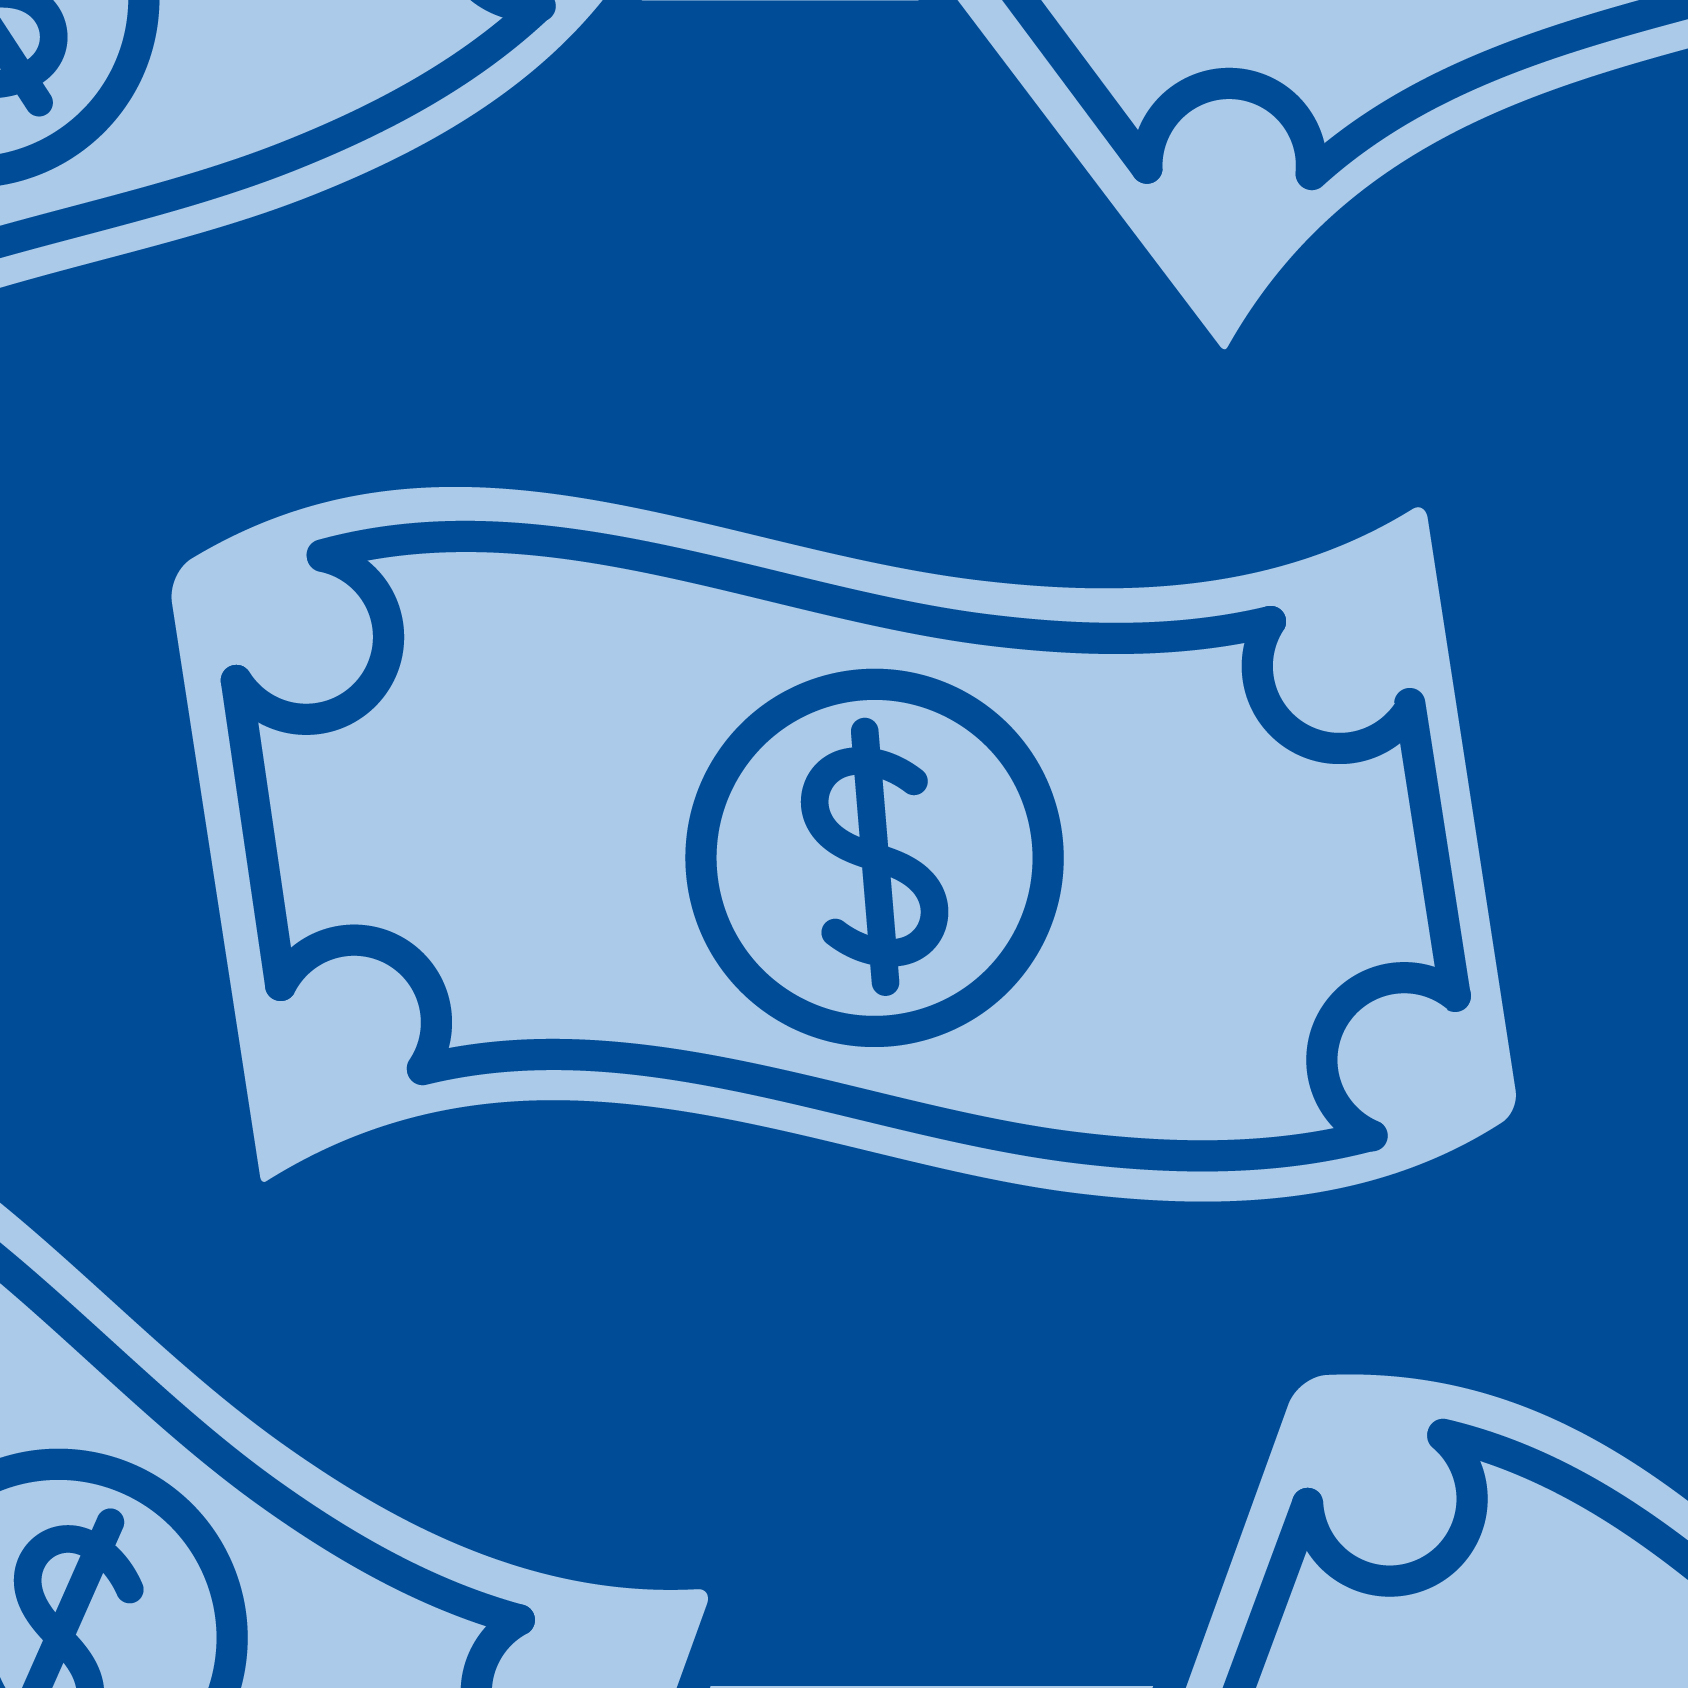 graphic illustration of a blue dollar bill